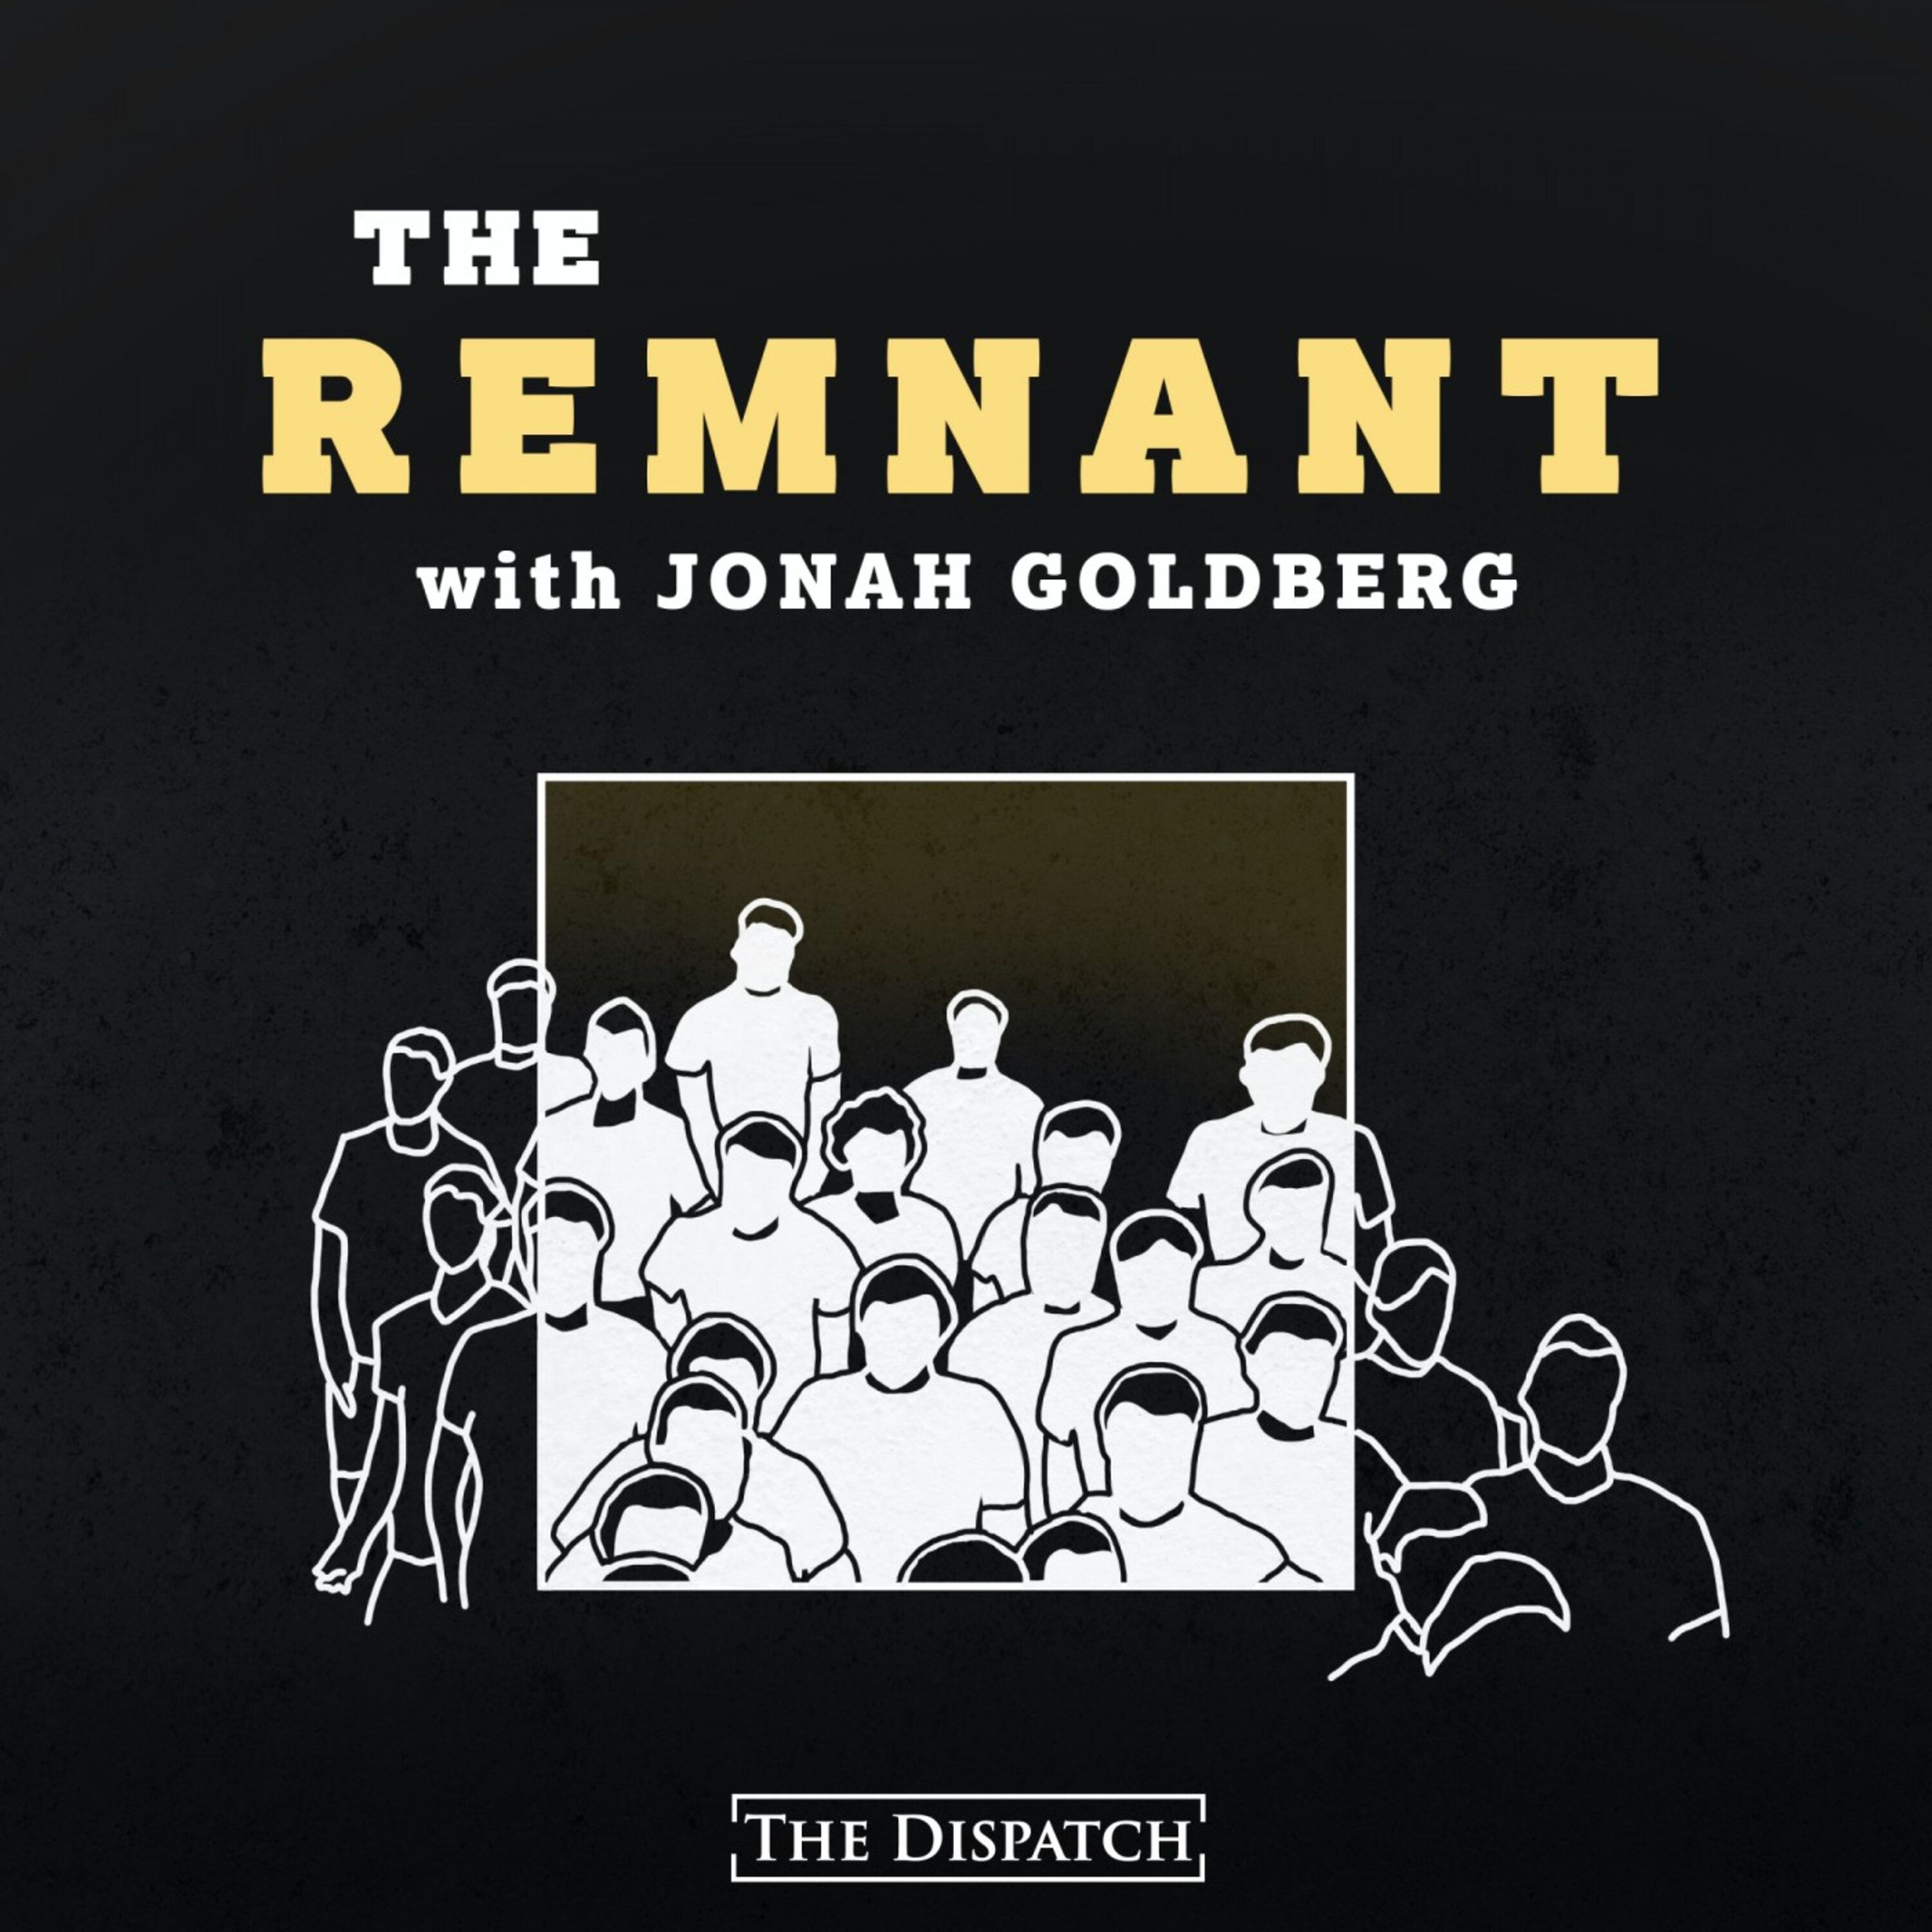 The Remnant with Jonah Goldberg Podcast | Free Listening on